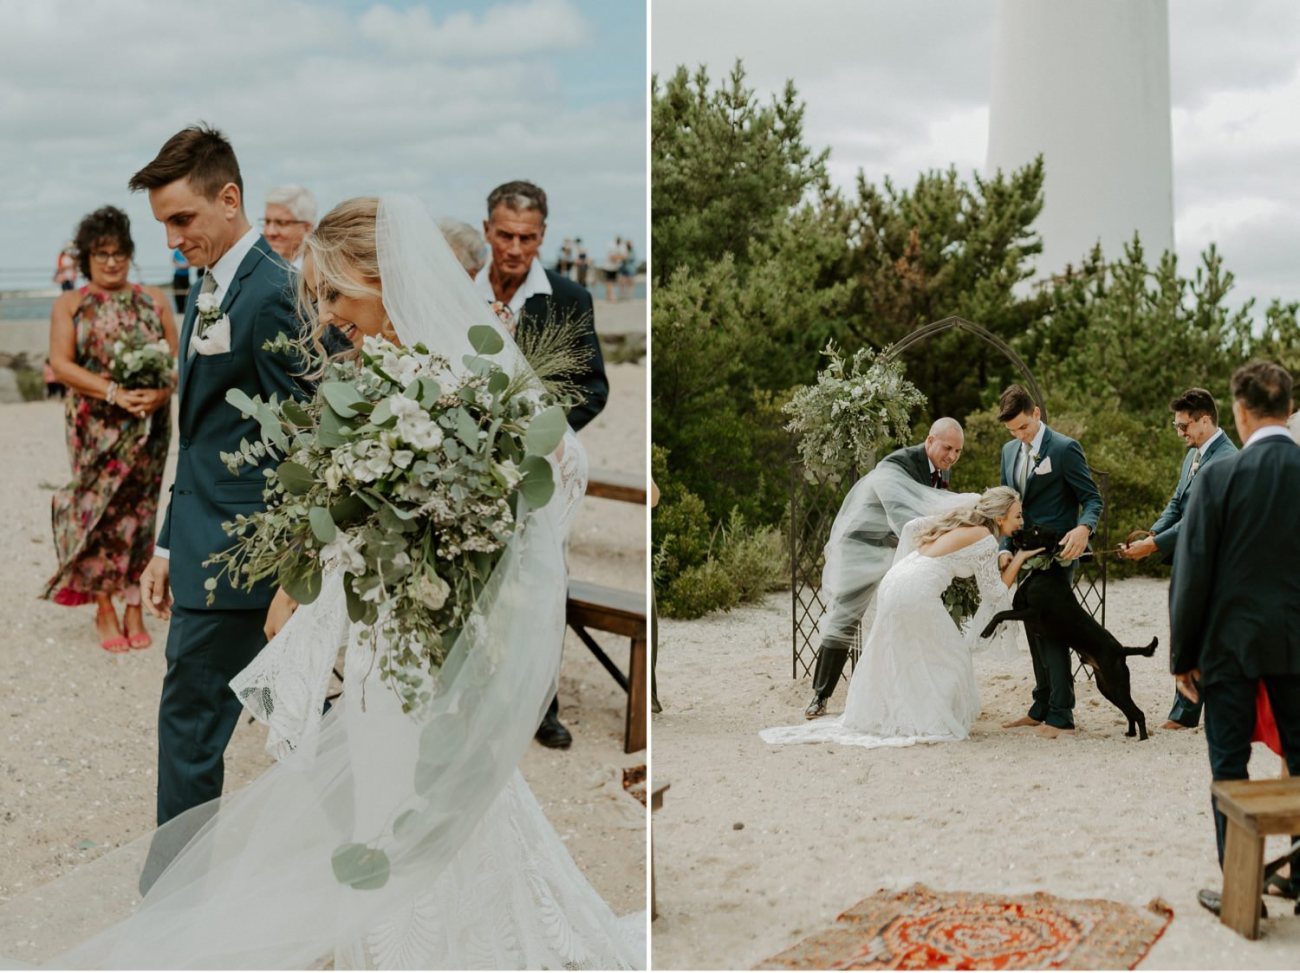 Long Beach Island Wedding Barnegat Lighthouse Wedding Ceremony New Jersey Wedding Anais Possamai Photography Oregon Wedding Photographer 0031